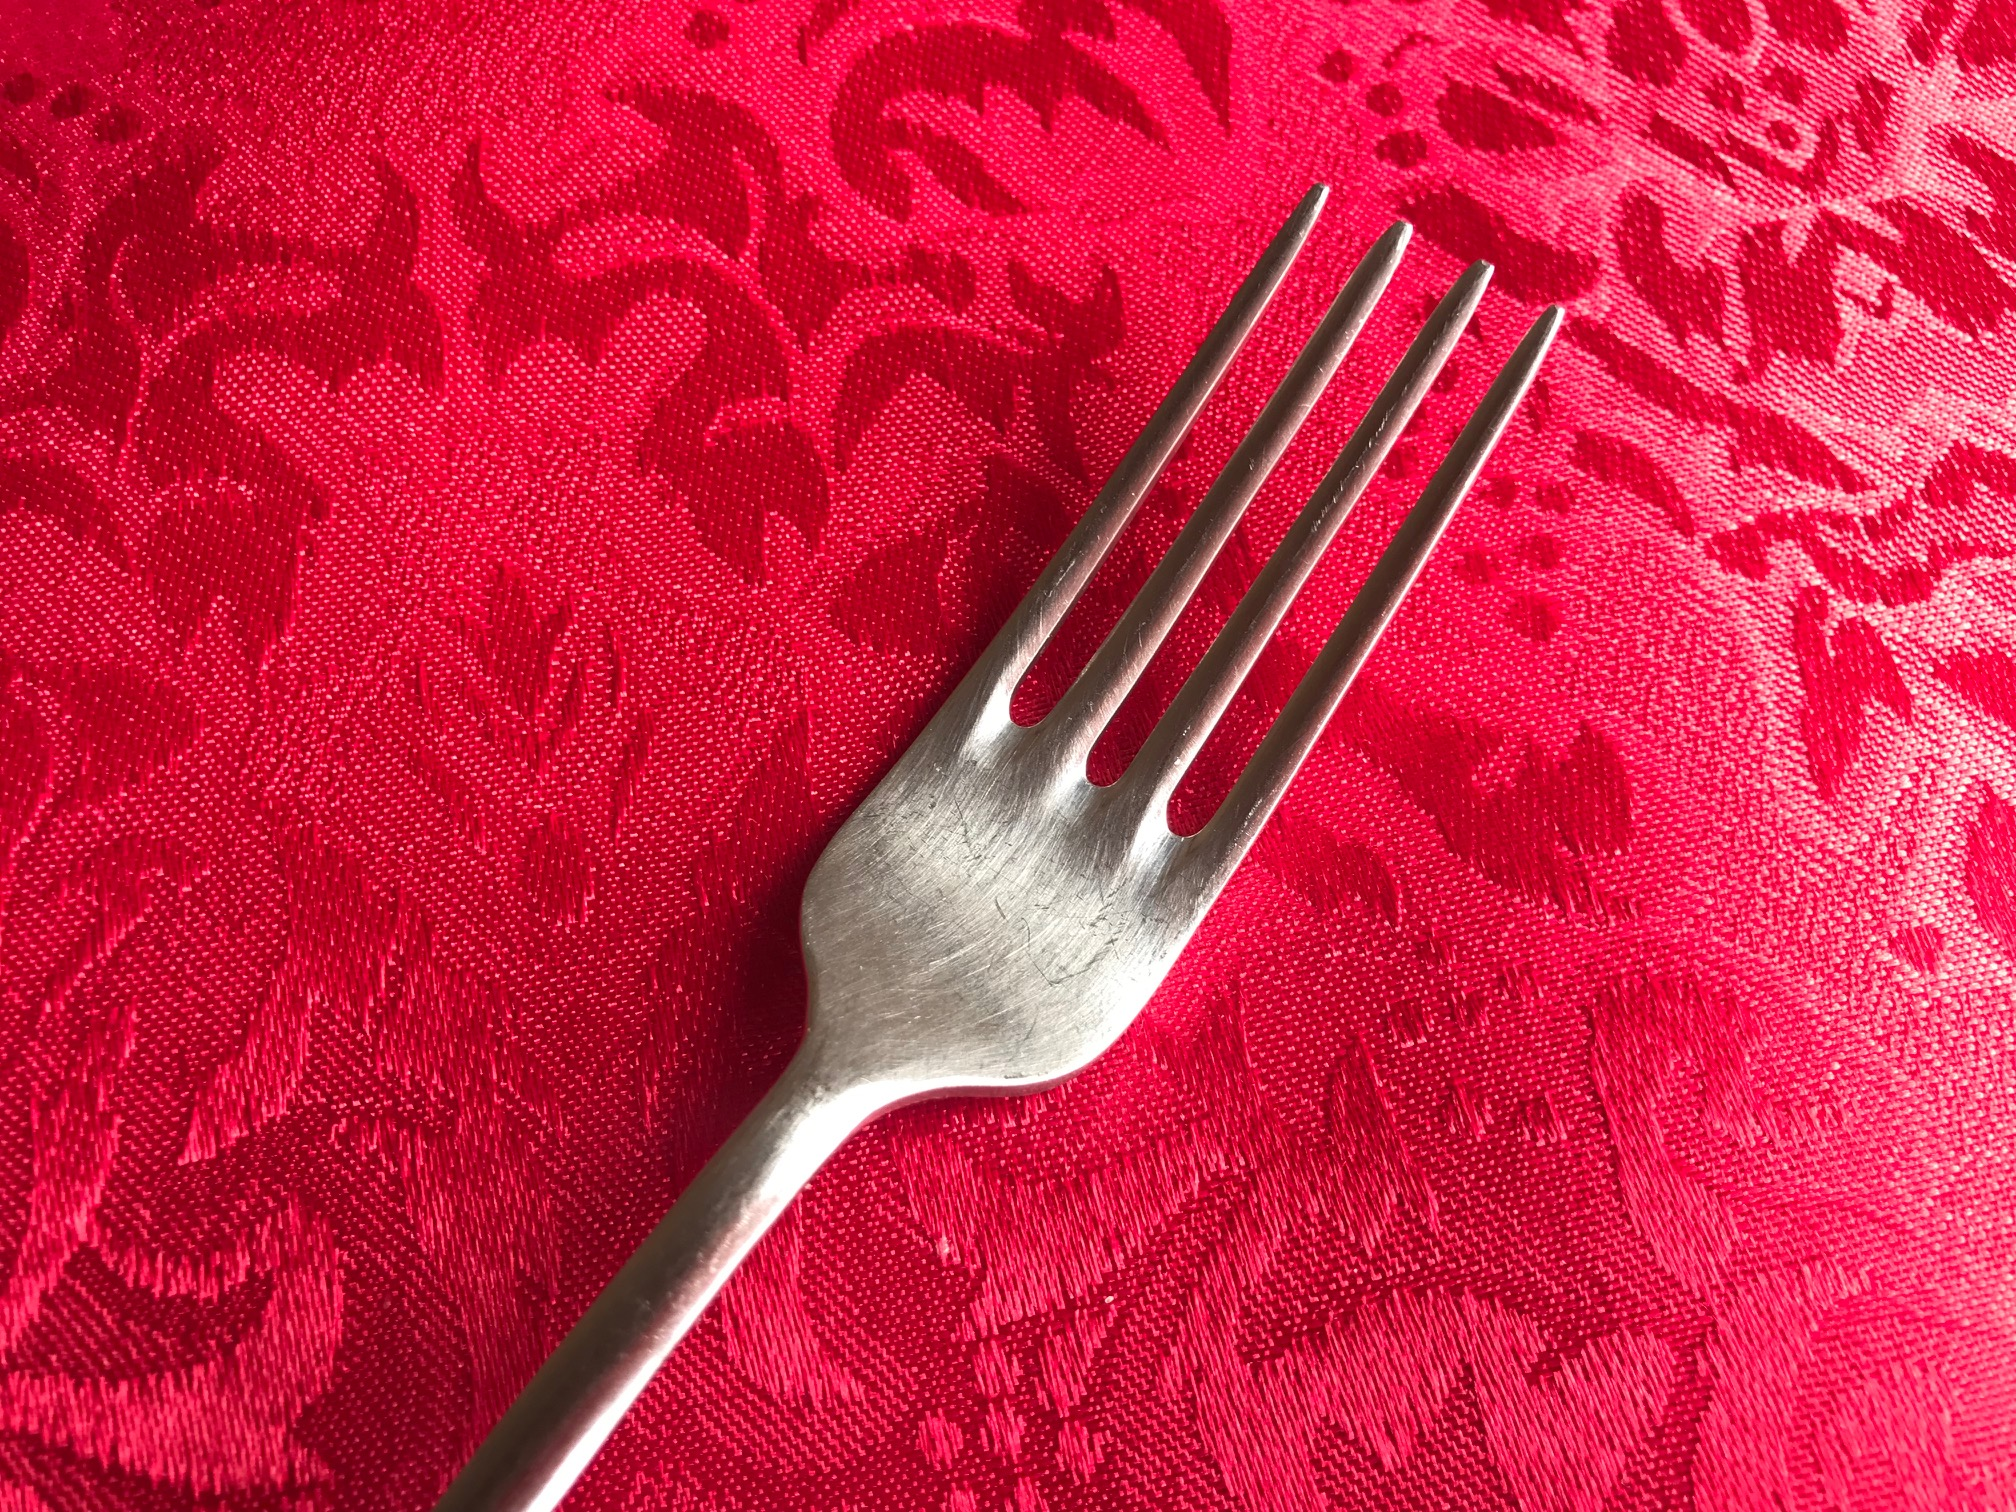 18/10 Stainless Steel Fork, c. 2003 - Borromeo Pattern by Calderoni, Italy: Lead Free